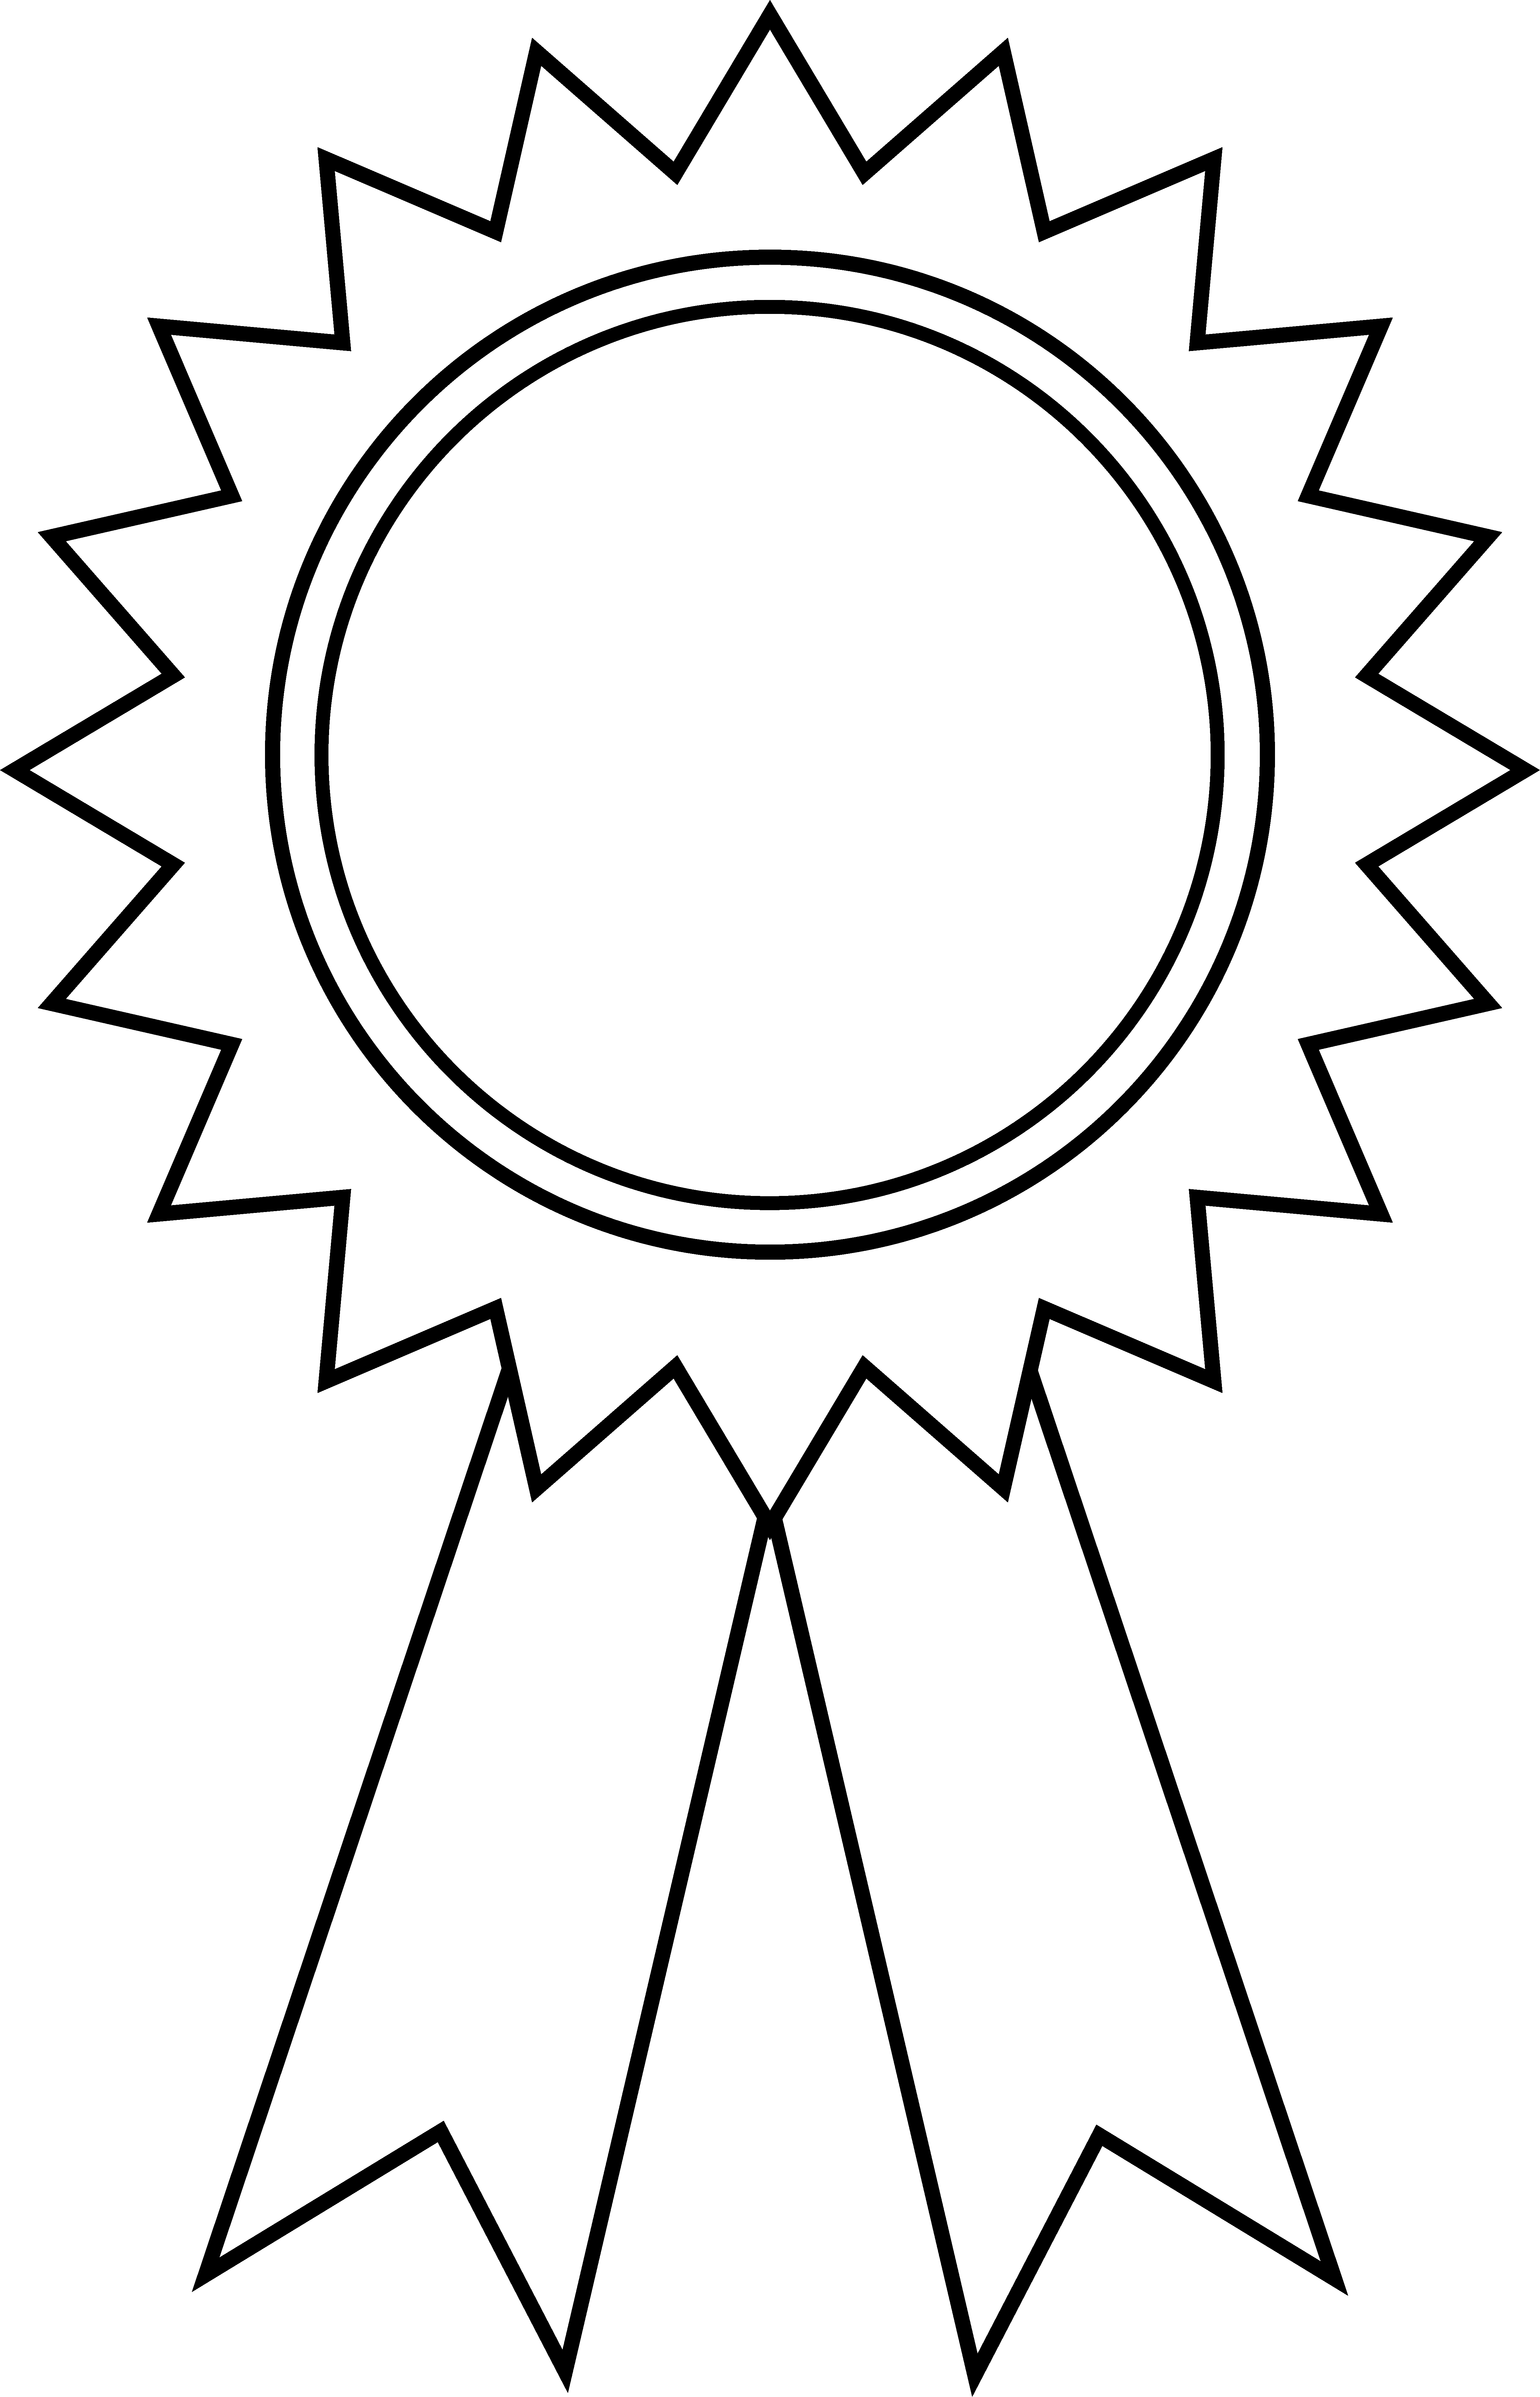 Award ribbon outline free. Prize clipart math